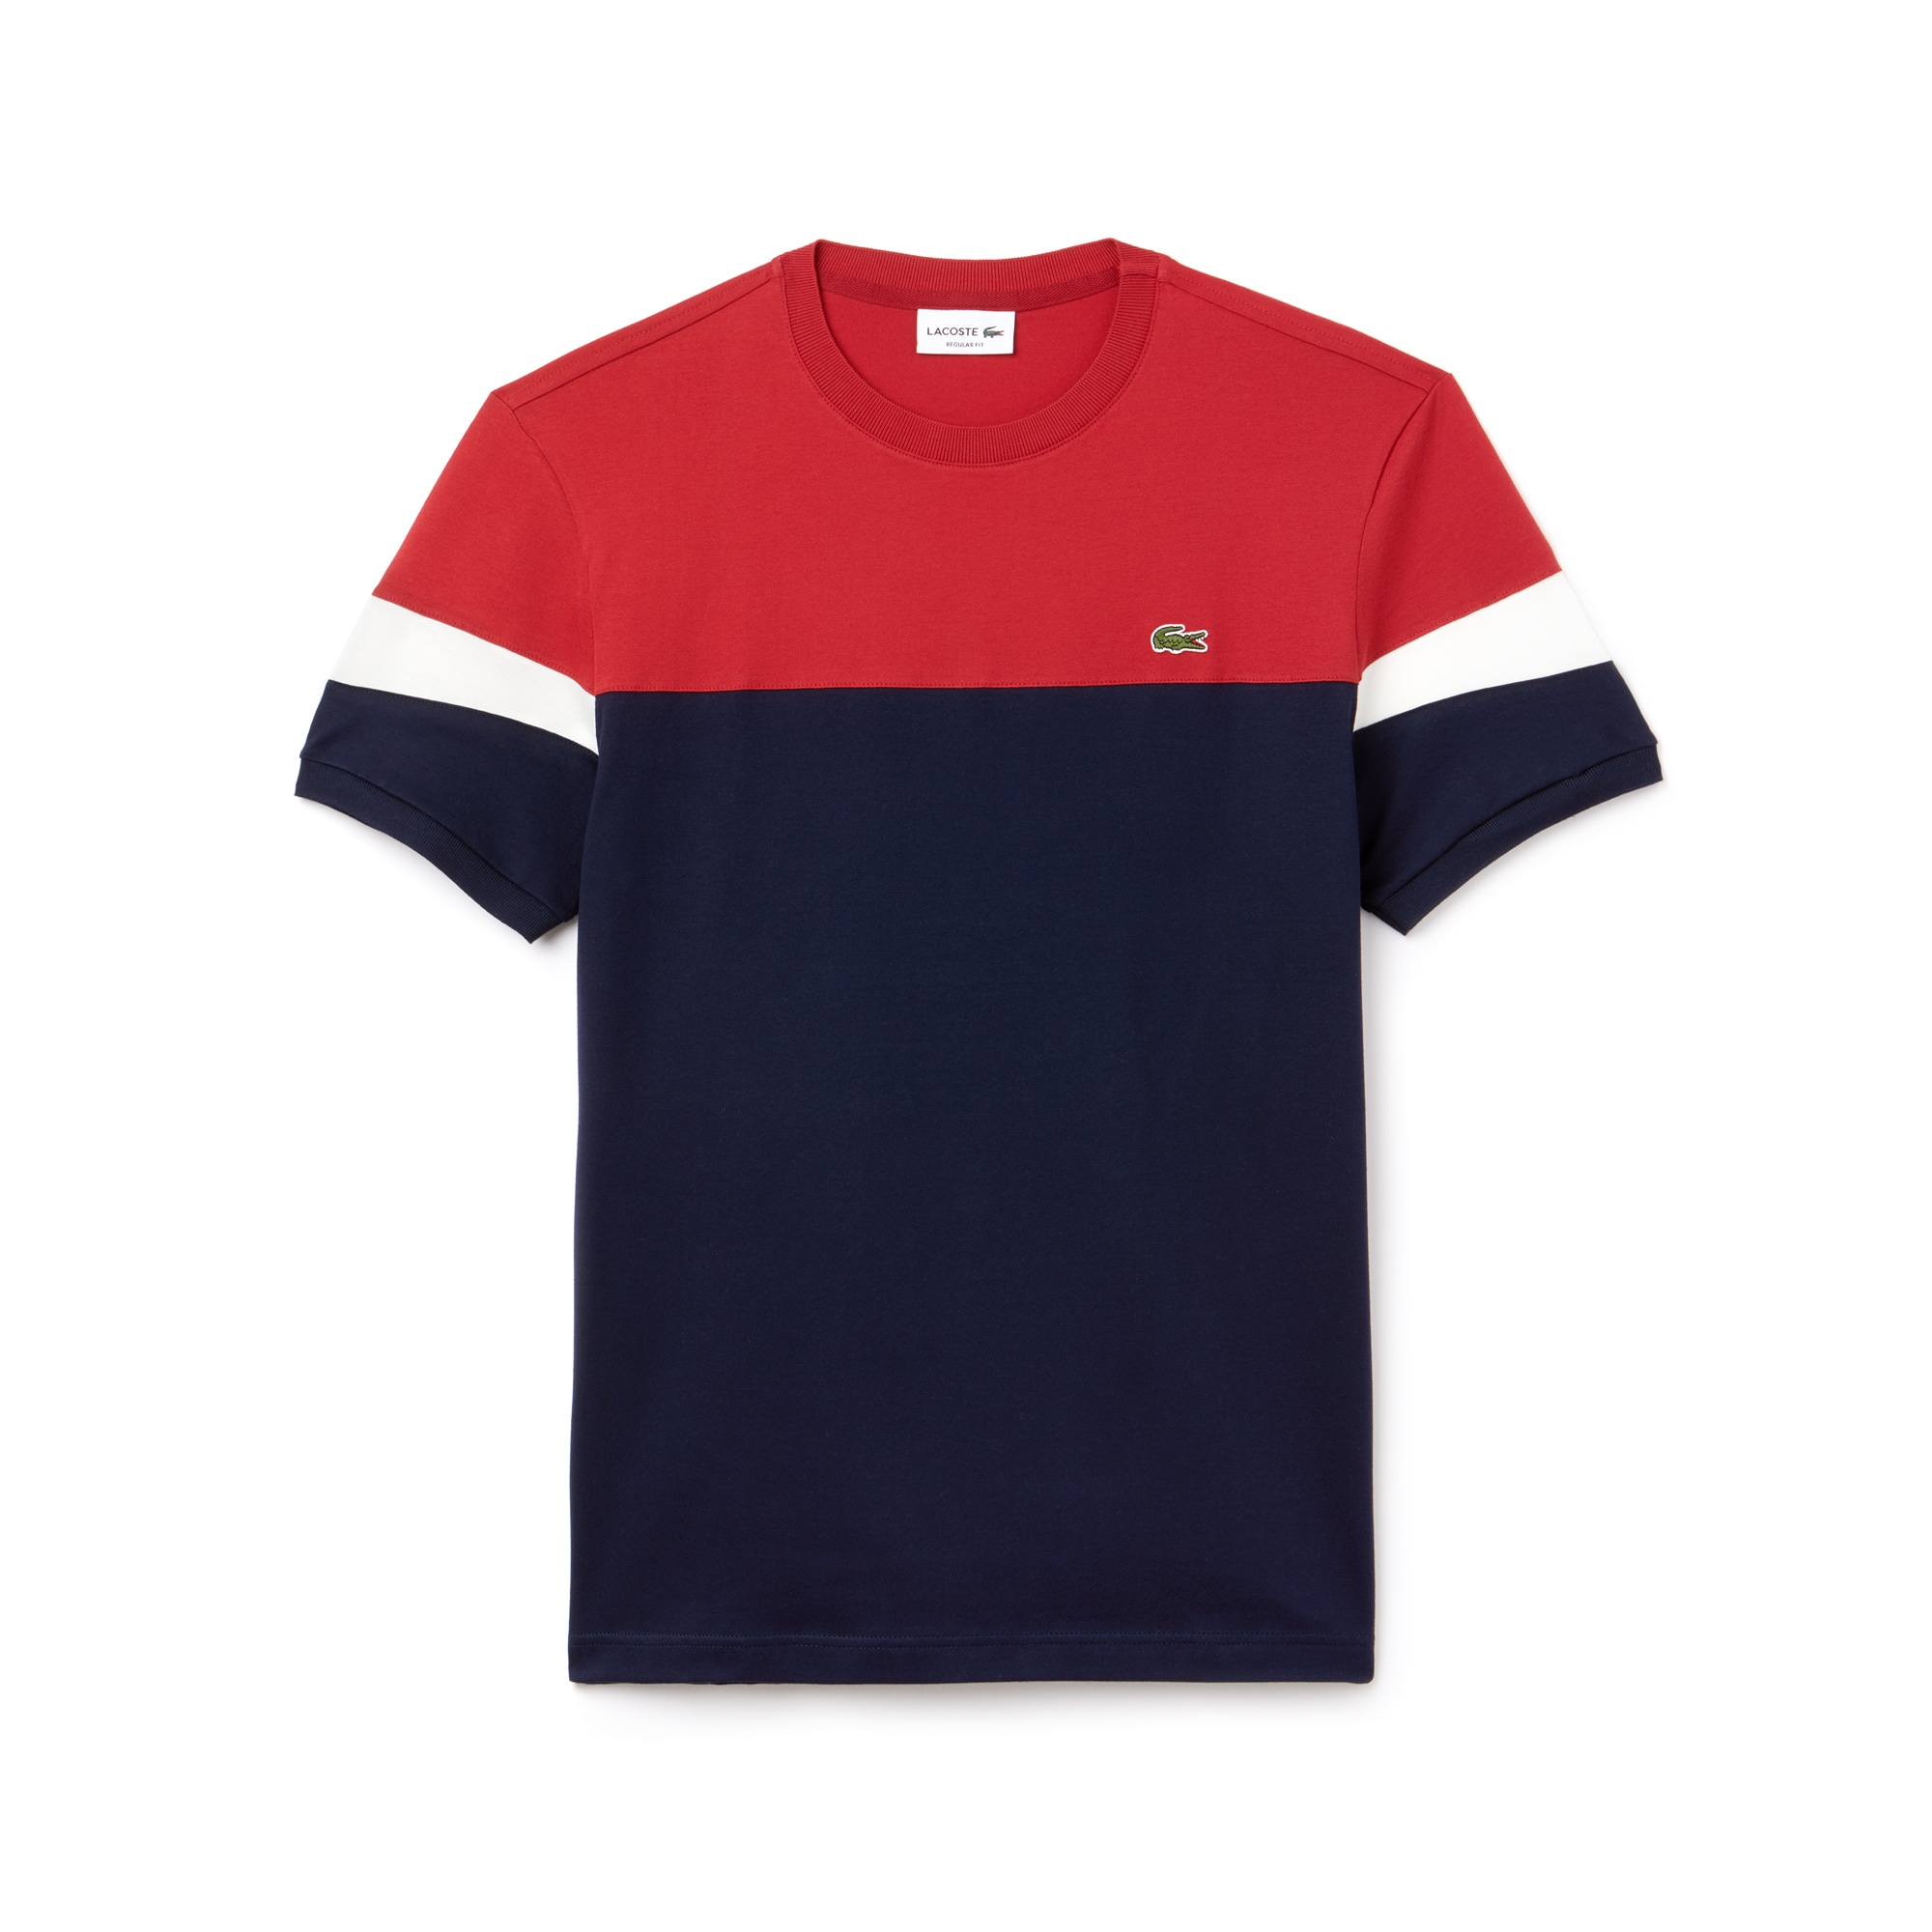 Men's Crew Neck Colorblock Soft Jersey T-shirt